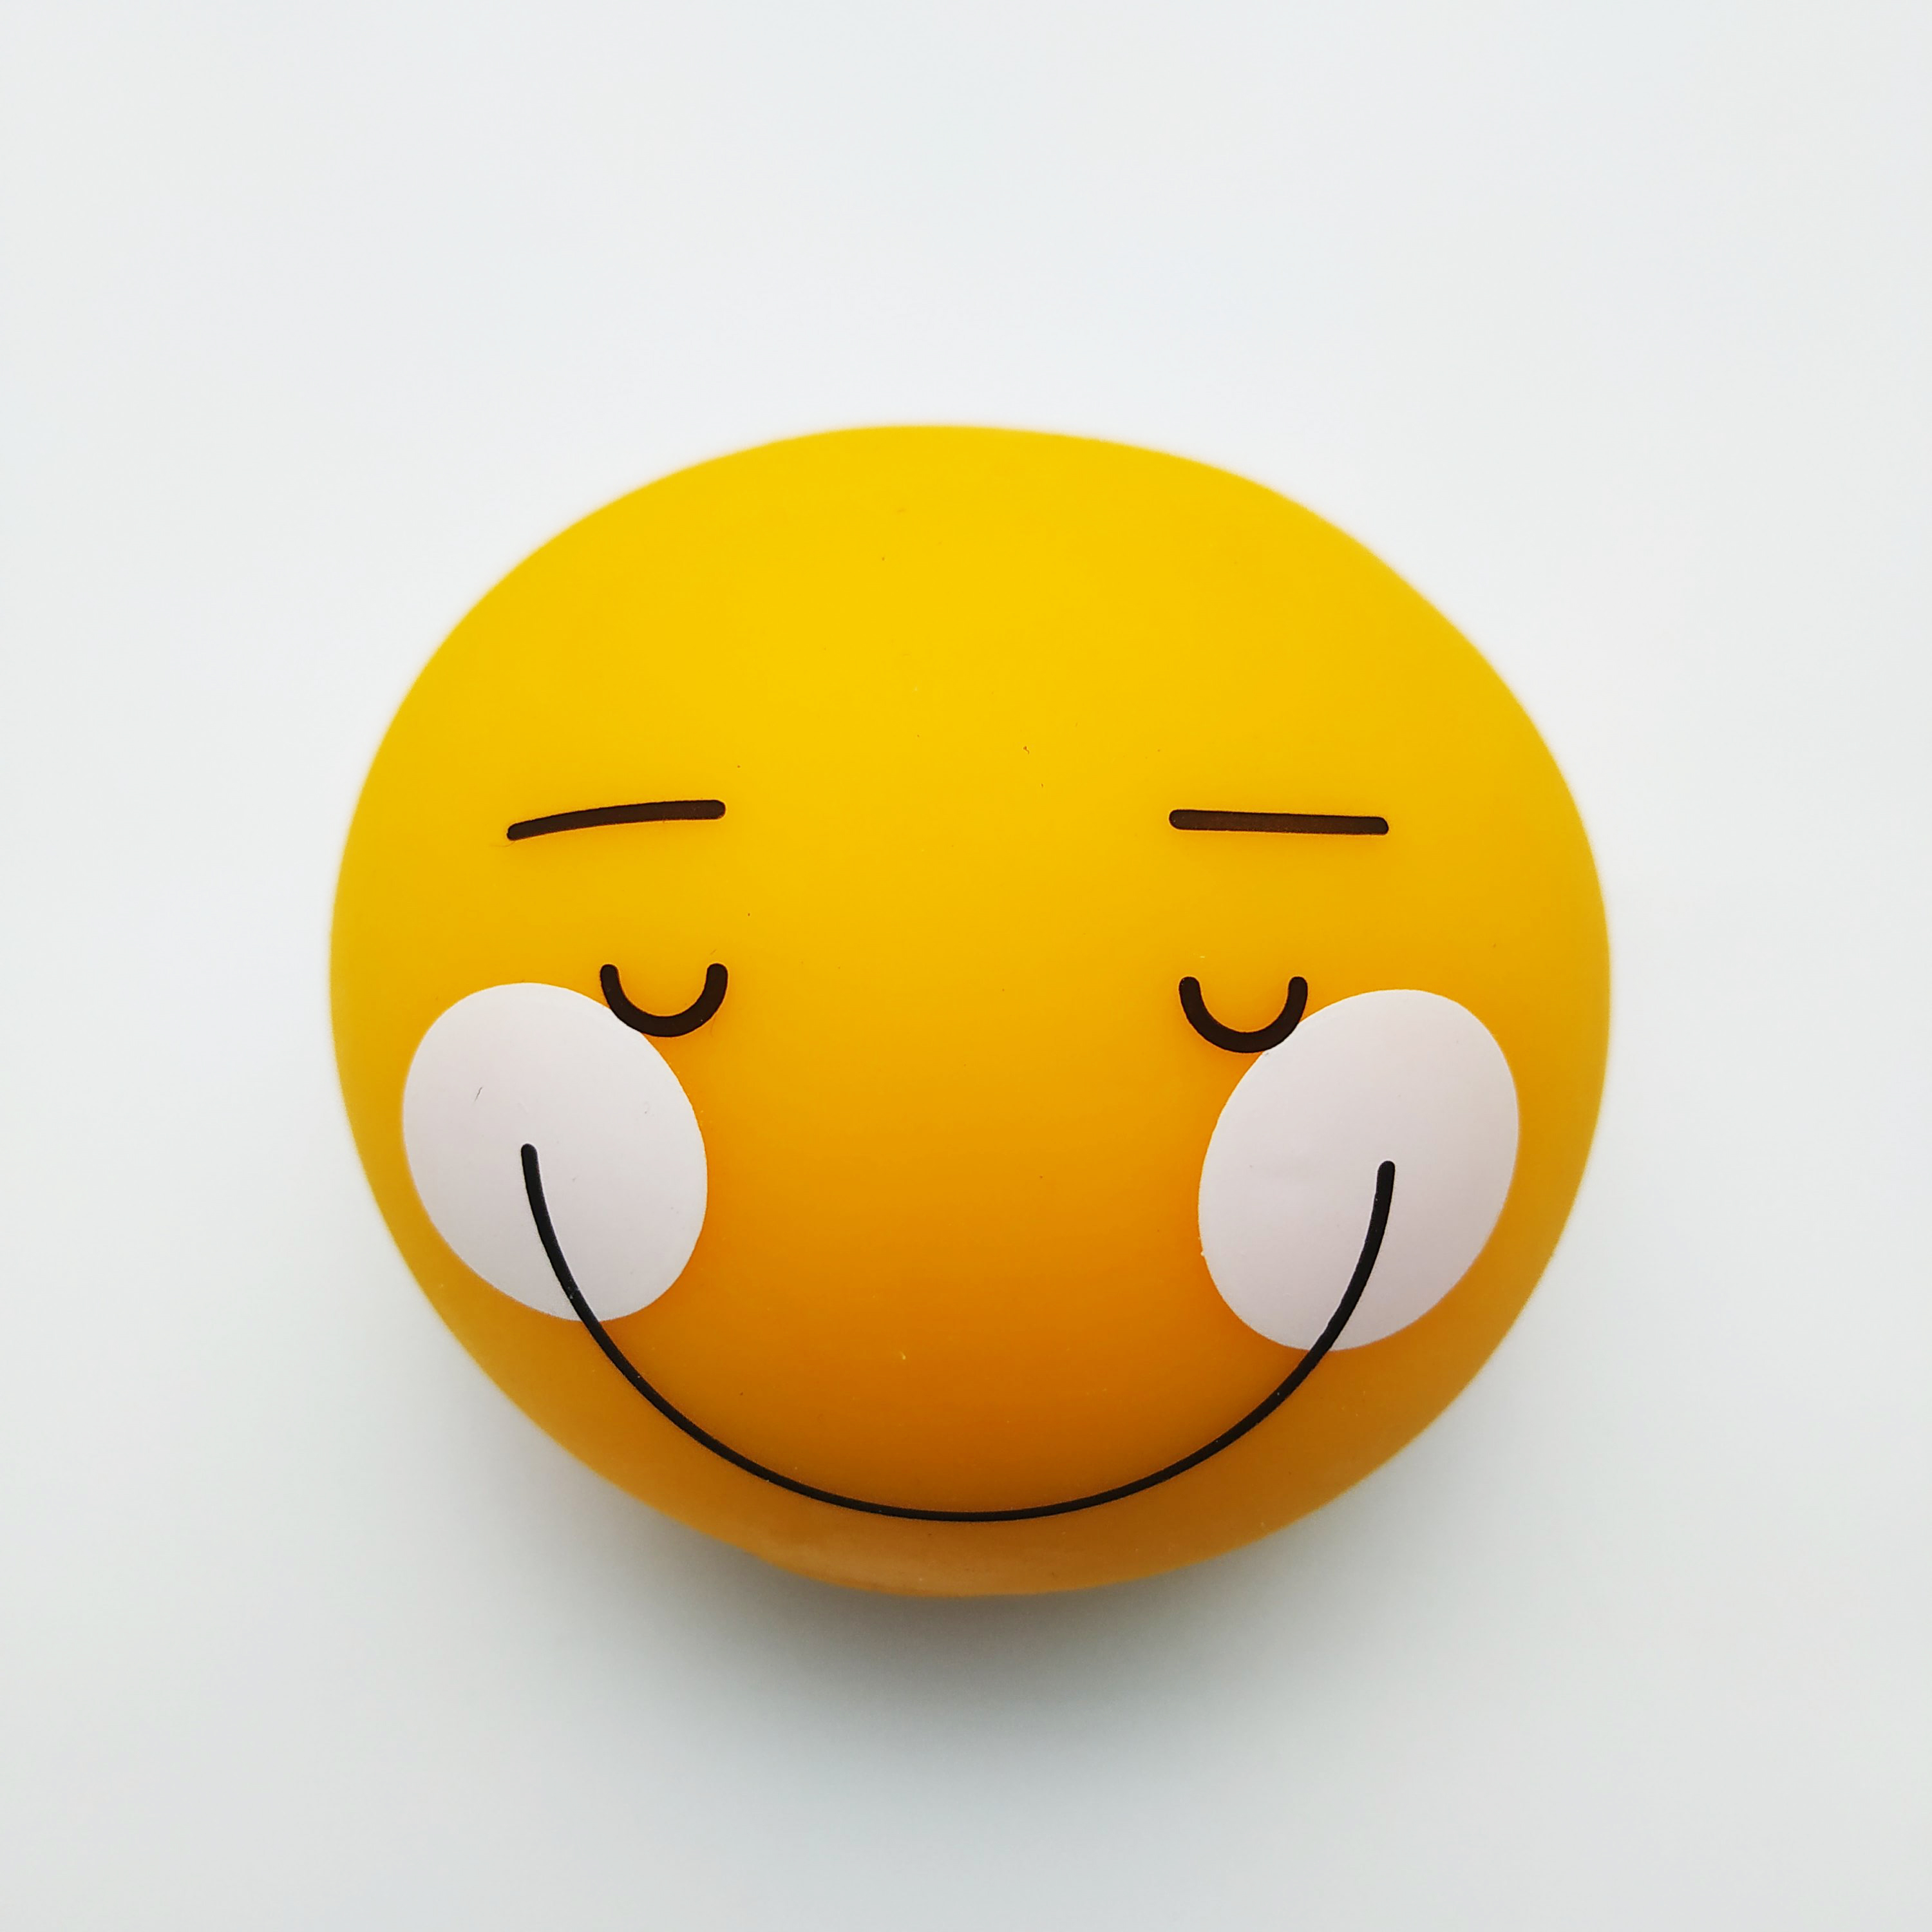 Newest Arrival Round Smile Face Stress Ball Toy Promotional Funny Elastic TPR Soft Ball With Customized Logo